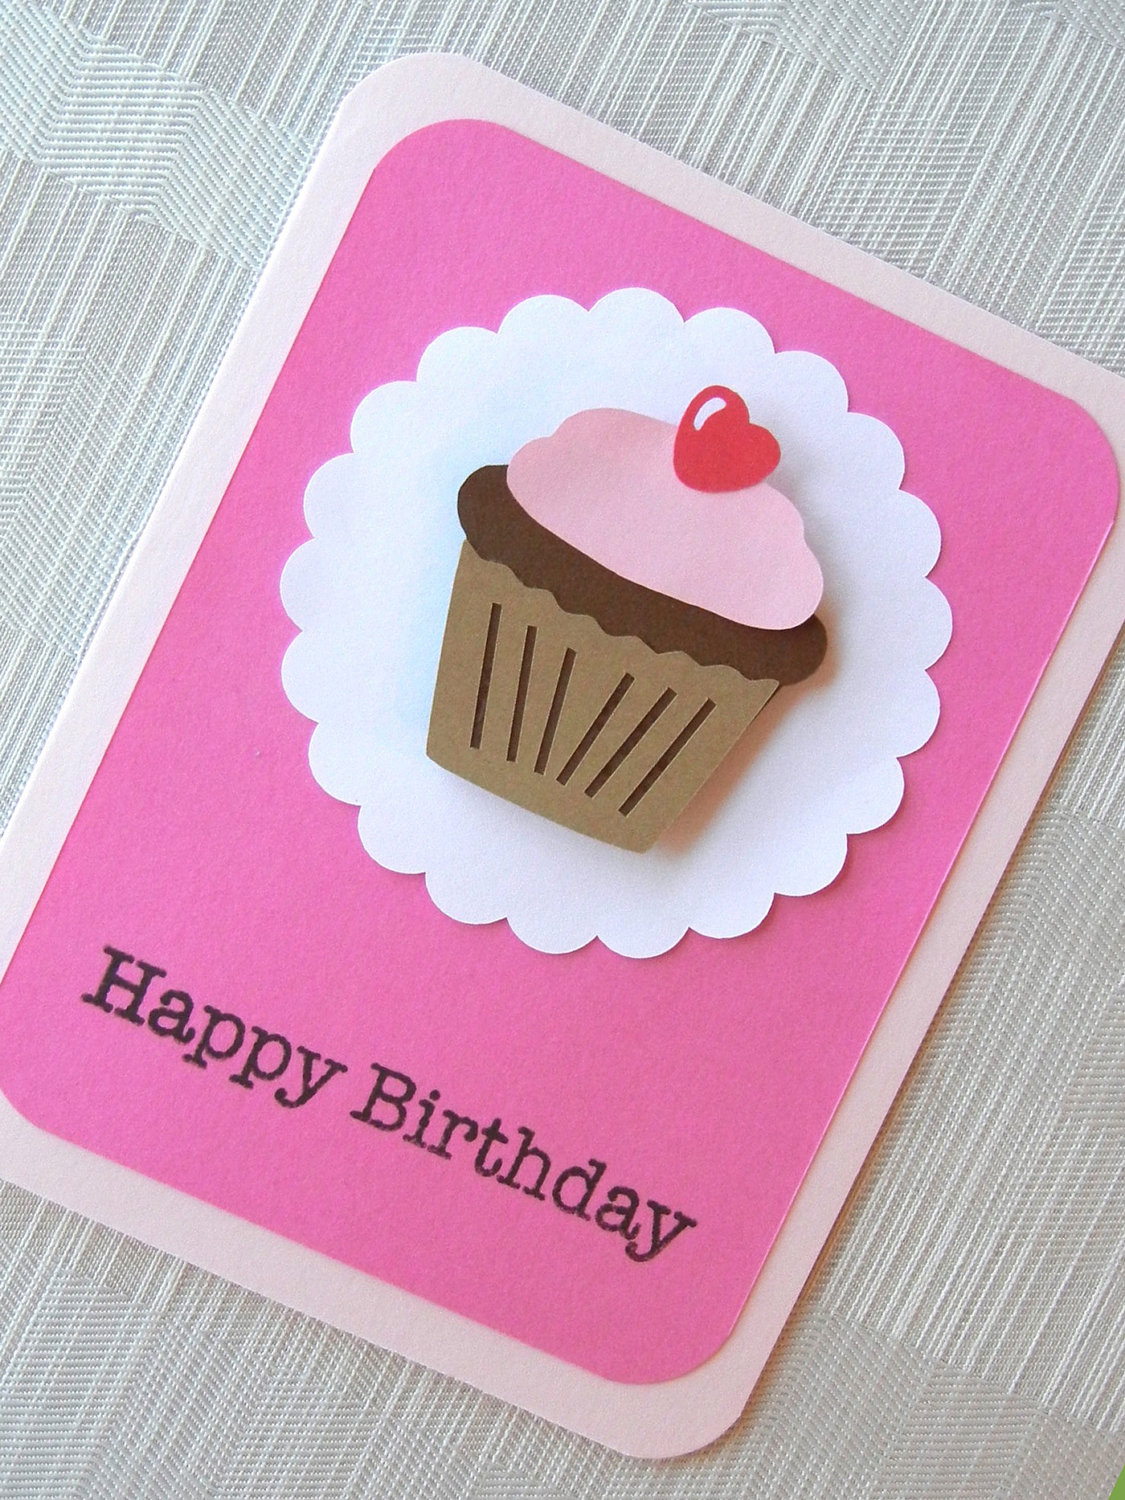 Easy diy birthday cards ideas and designs easy diy birthday cards m4hsunfo Gallery